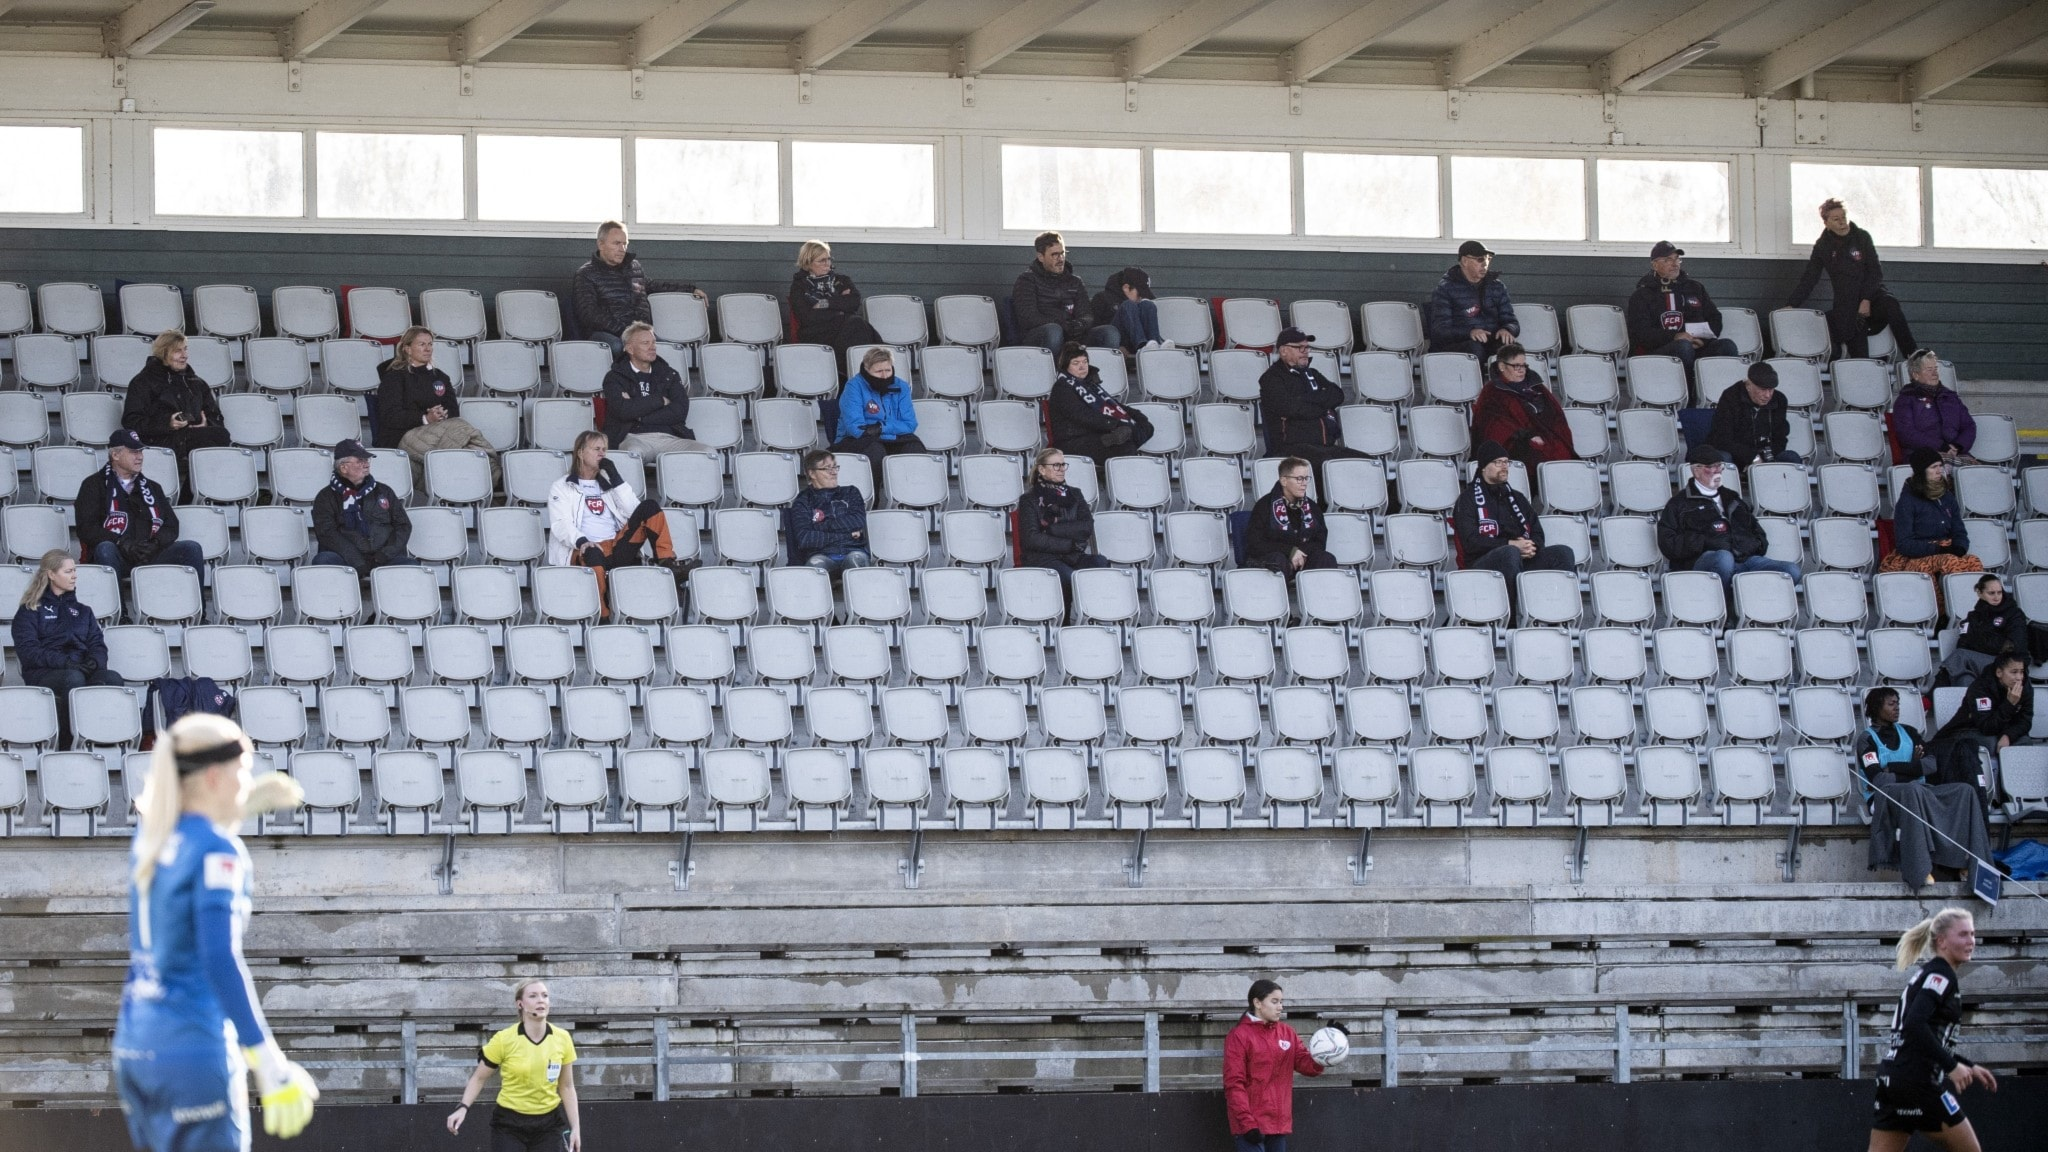 A sports arena stand with people sitting spread out.